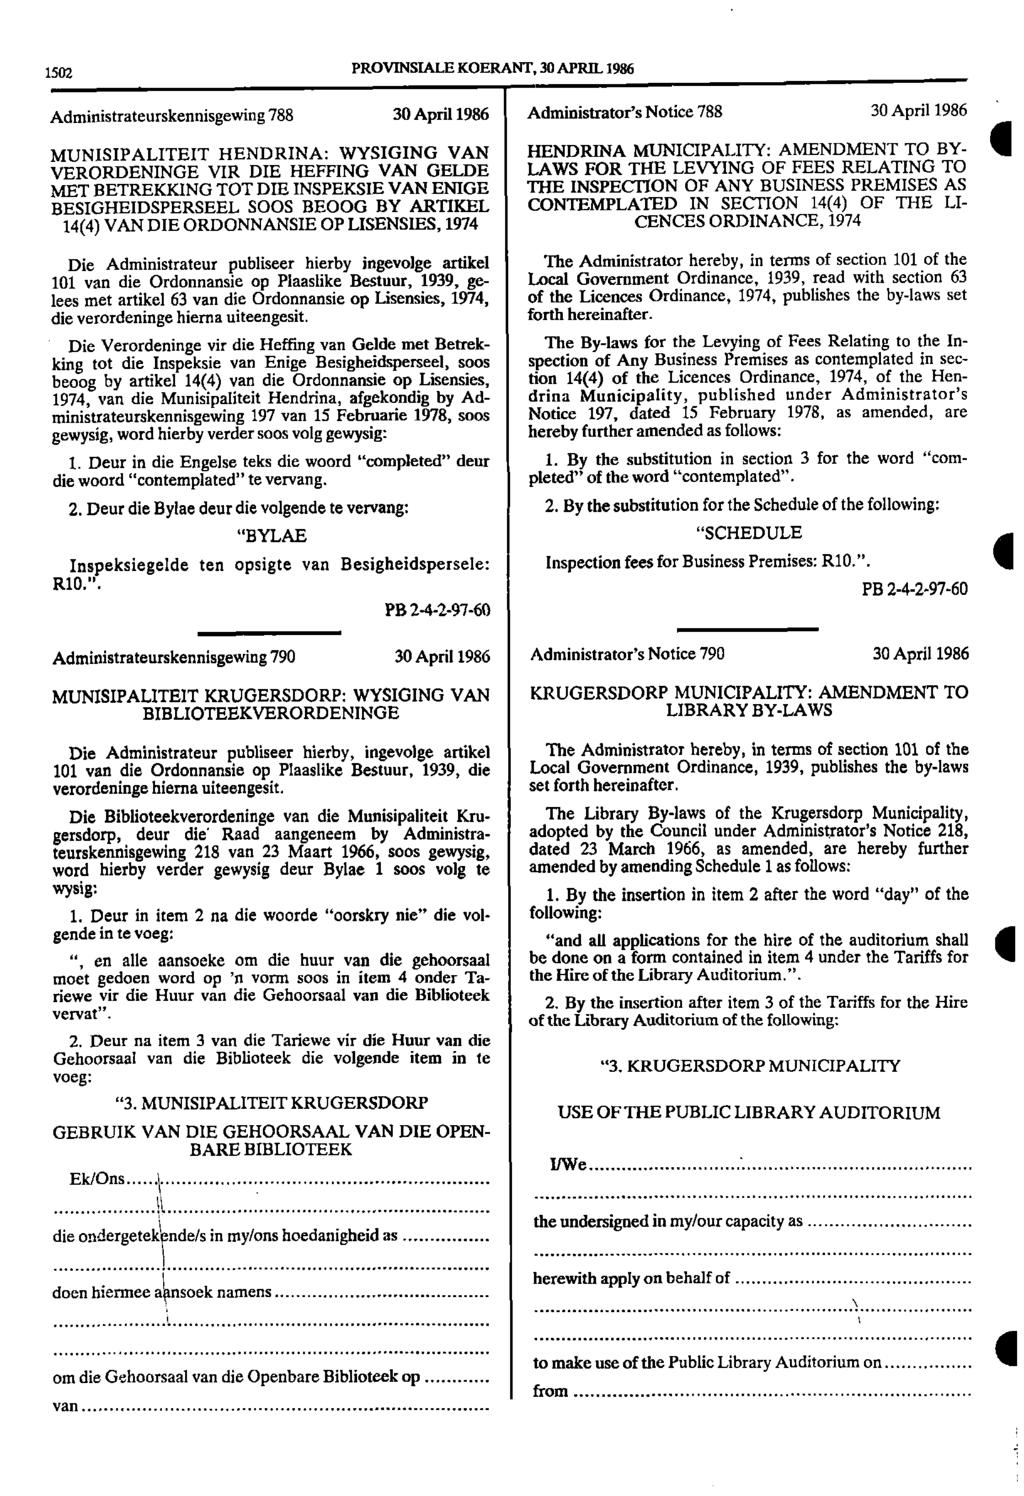 1502 PROVINSIALE KOERANT, 30 APRIL 1986 Administrateurskennisgewing 788 30 April 1986 Administrator's Notice 788 30 April 1986 MUNISIPALITEIT HENDRINA: WYSIGING VAN HENDRINA MUNICIPALITY: AMENDMENT